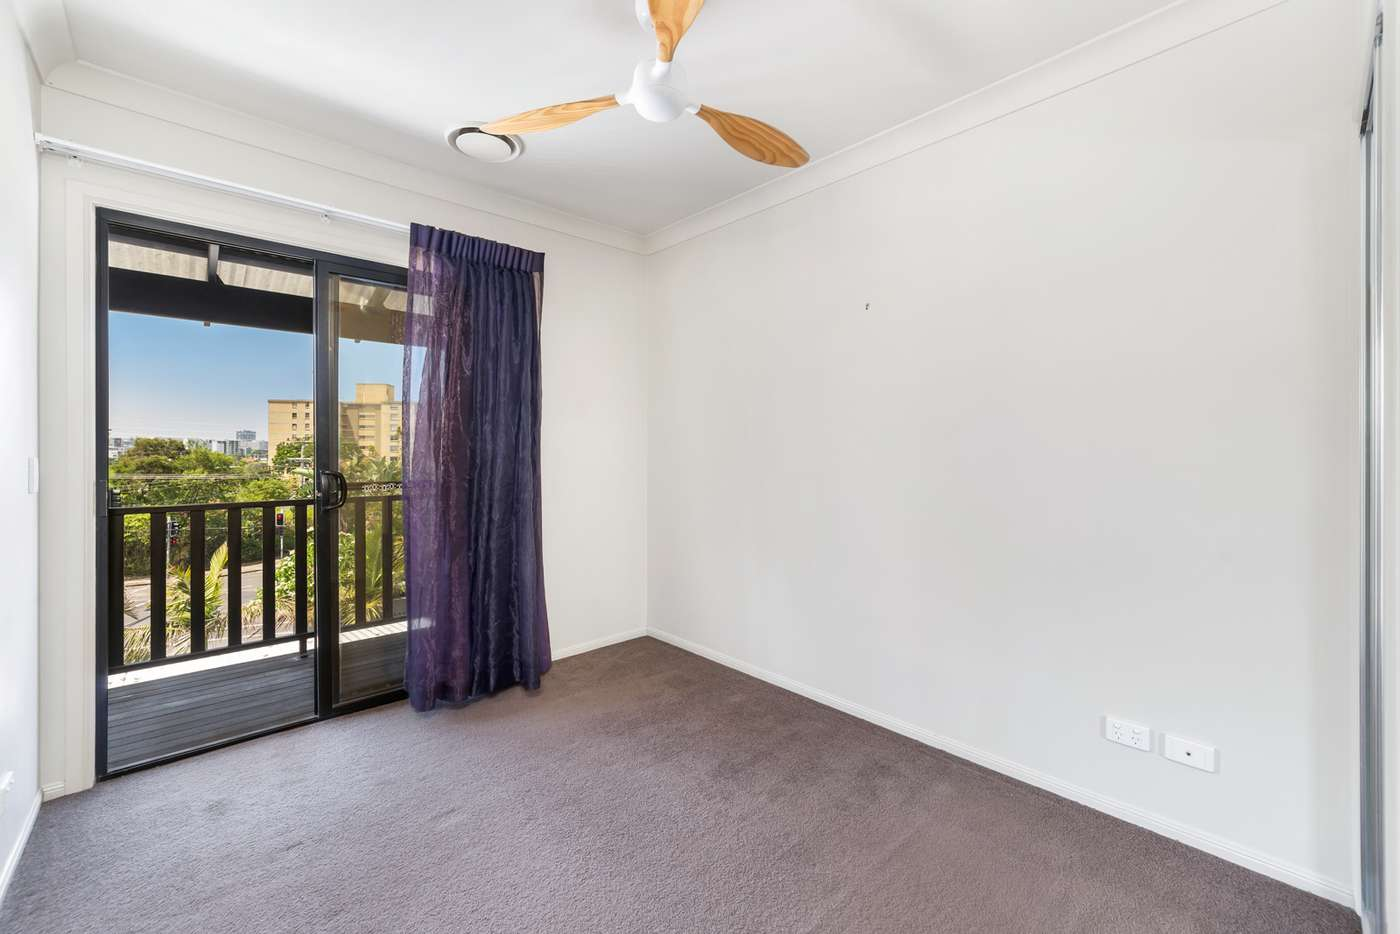 Sixth view of Homely townhouse listing, 1/56 Ryans Road, St Lucia QLD 4067